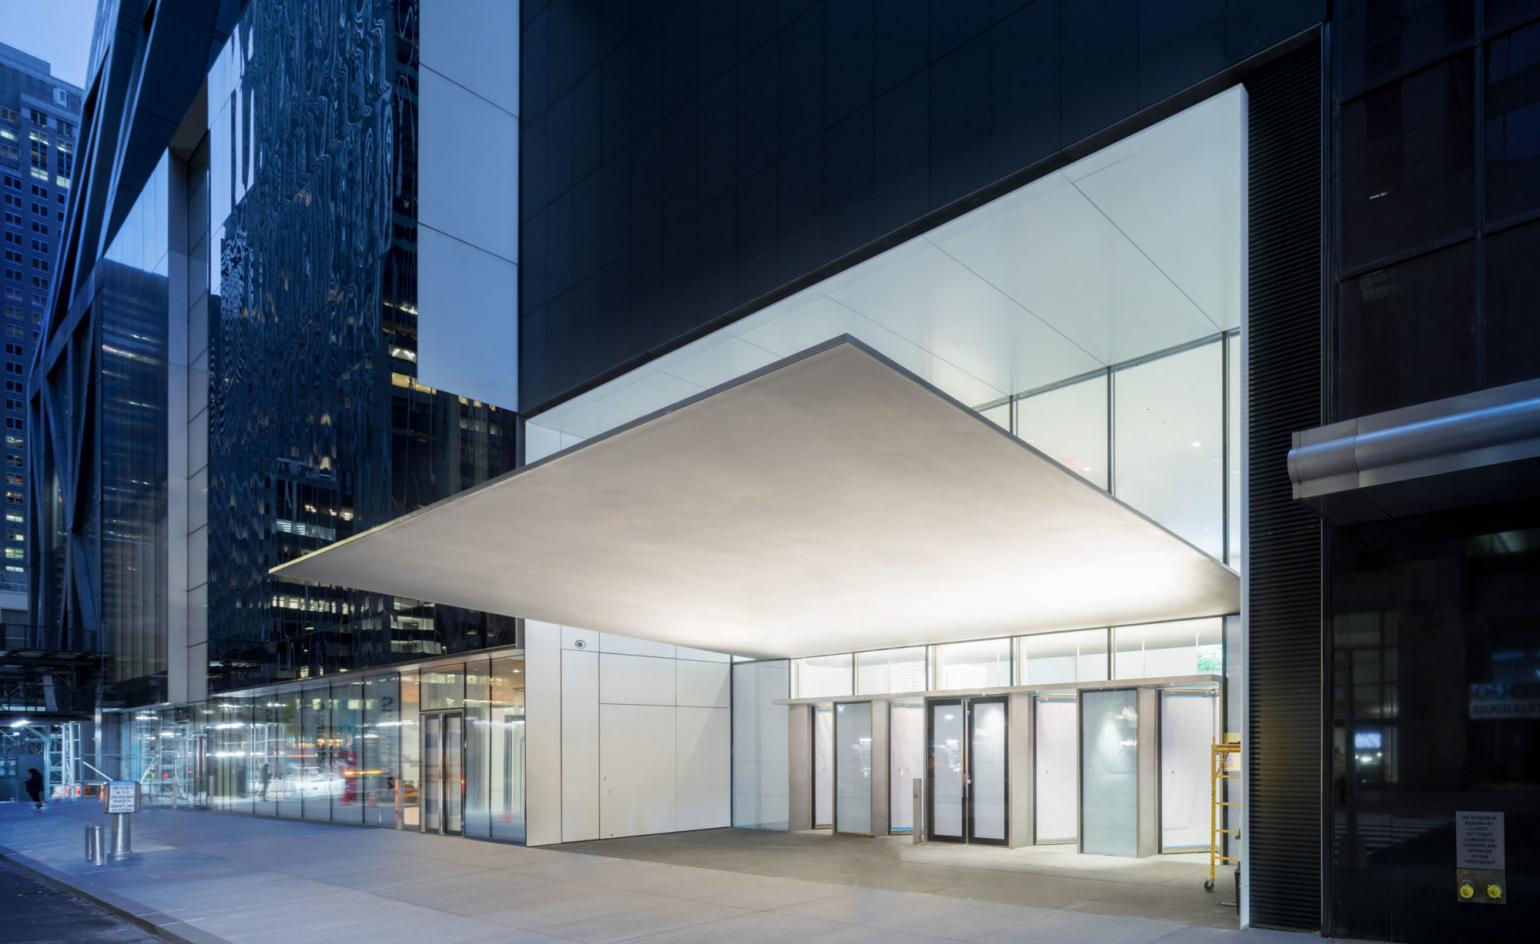 MoMA's latest expansion in New York by DS+R with Gensler